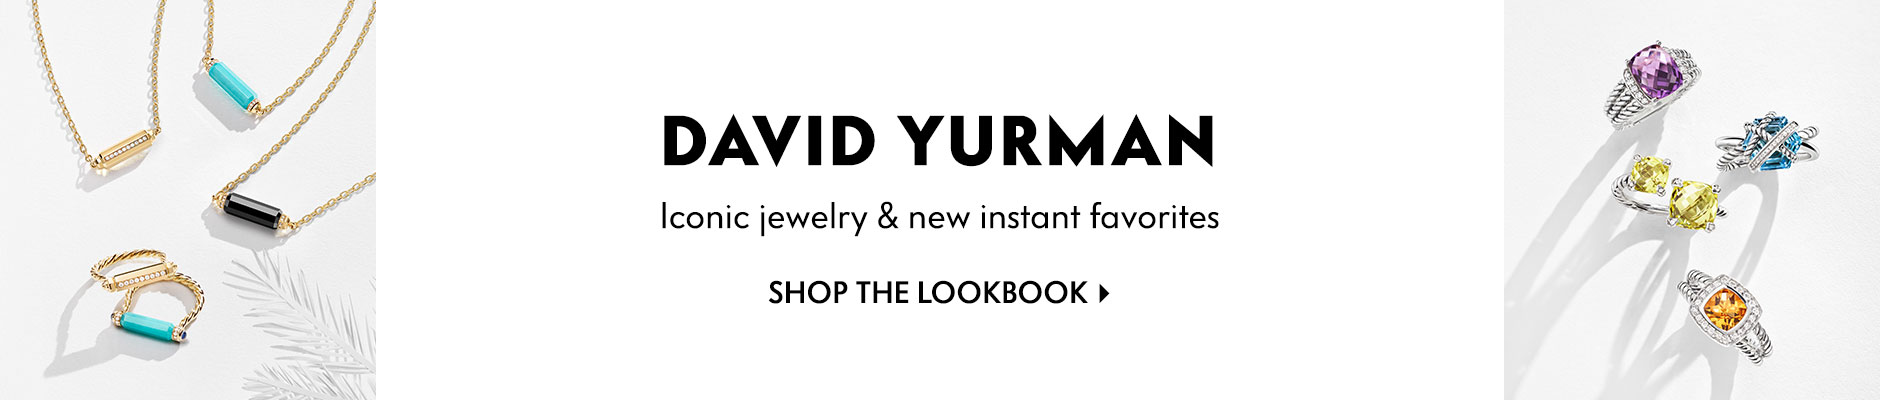 David Yurman Holiday Mailer Lookbook